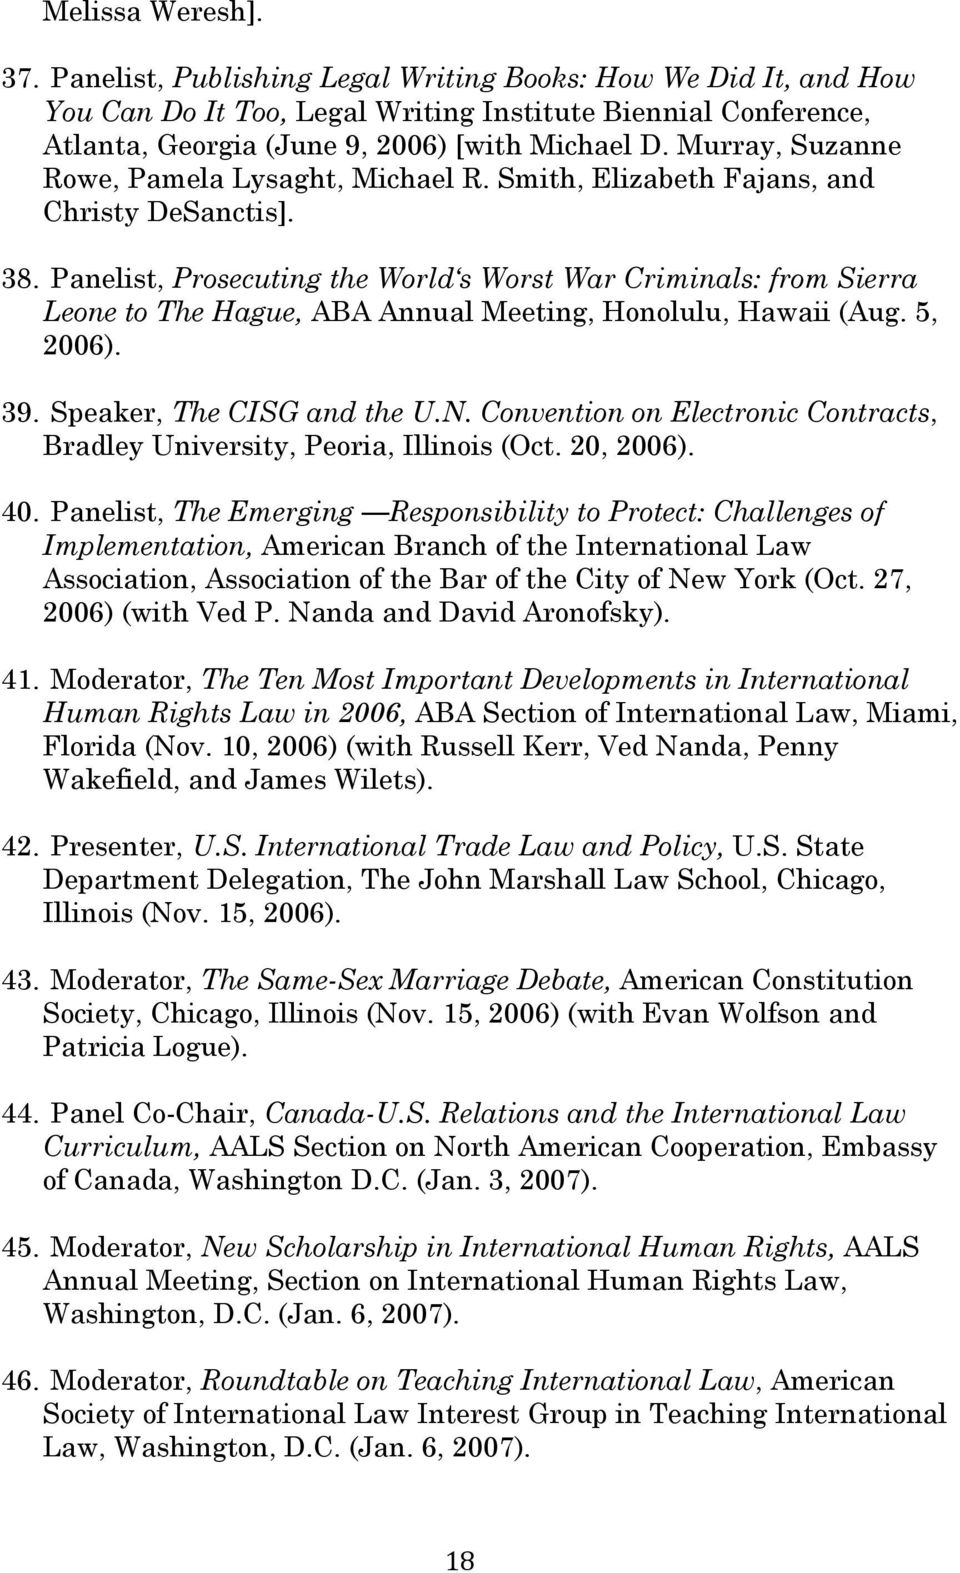 Panelist, Prosecuting the World s Worst War Criminals: from Sierra Leone to The Hague, ABA Annual Meeting, Honolulu, Hawaii (Aug. 5, 2006). 39. Speaker, The CISG and the U.N.